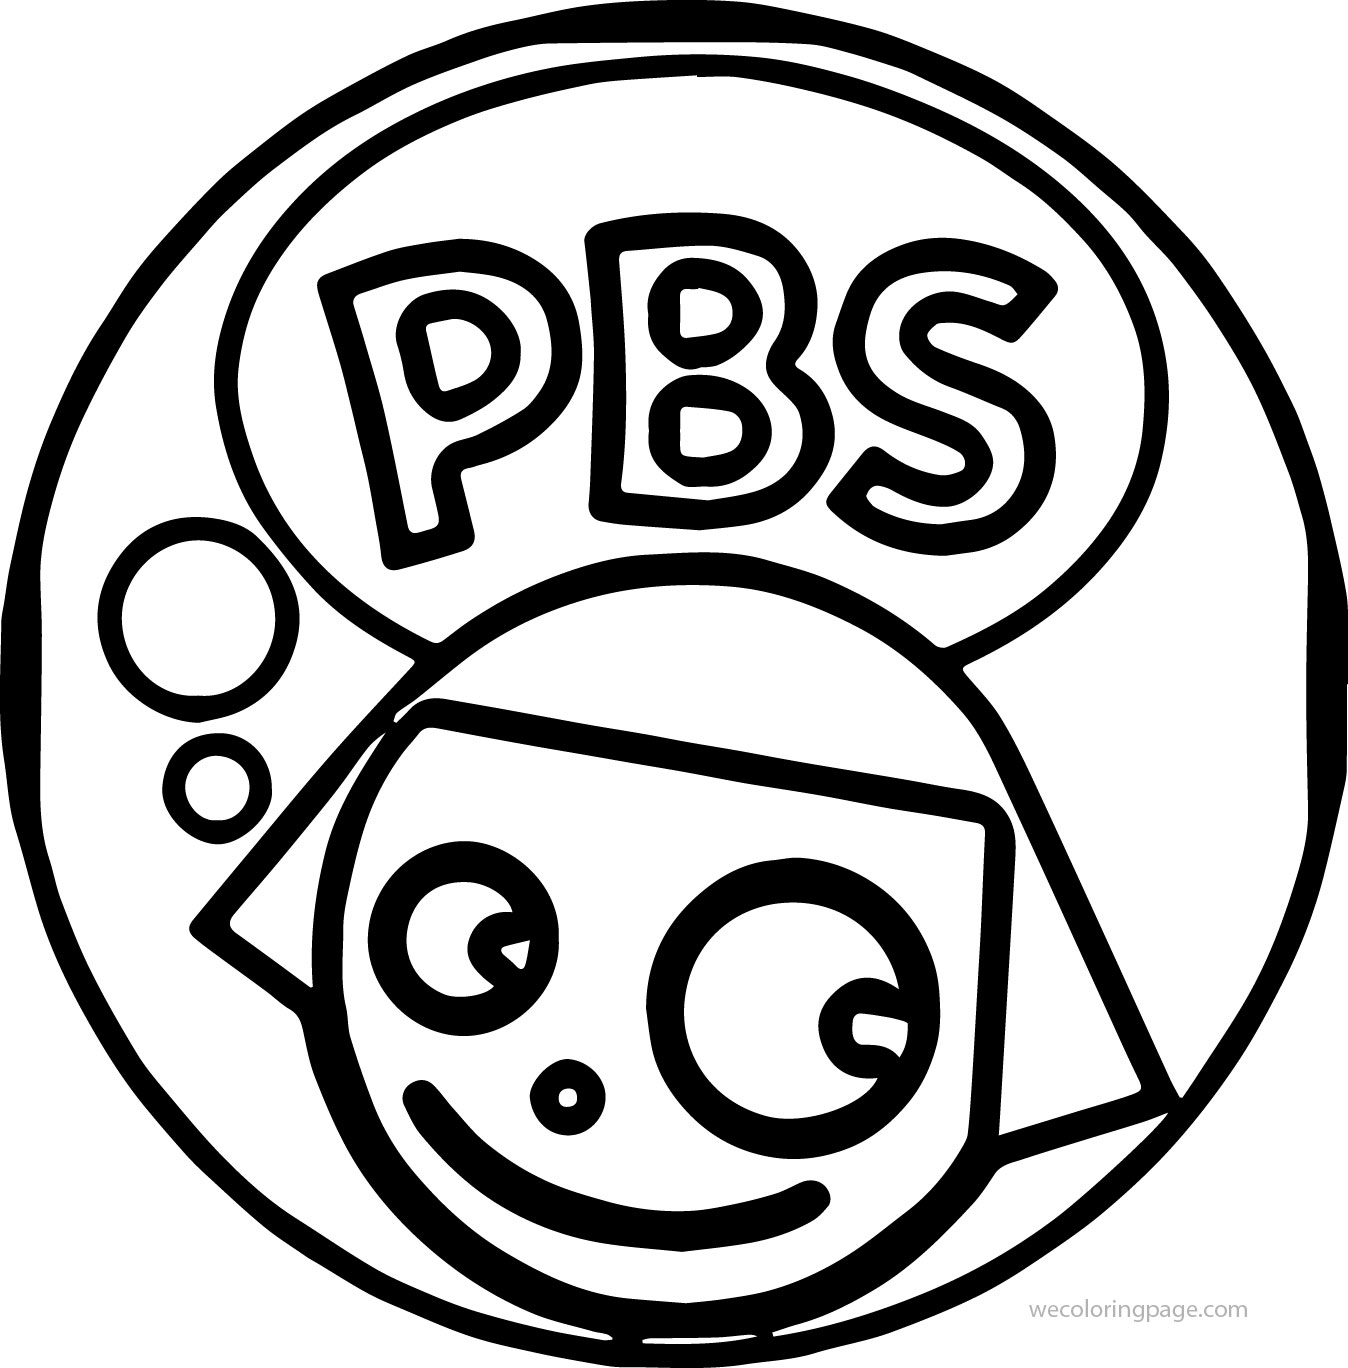 Pbs Kids Coloring Pages For Kids